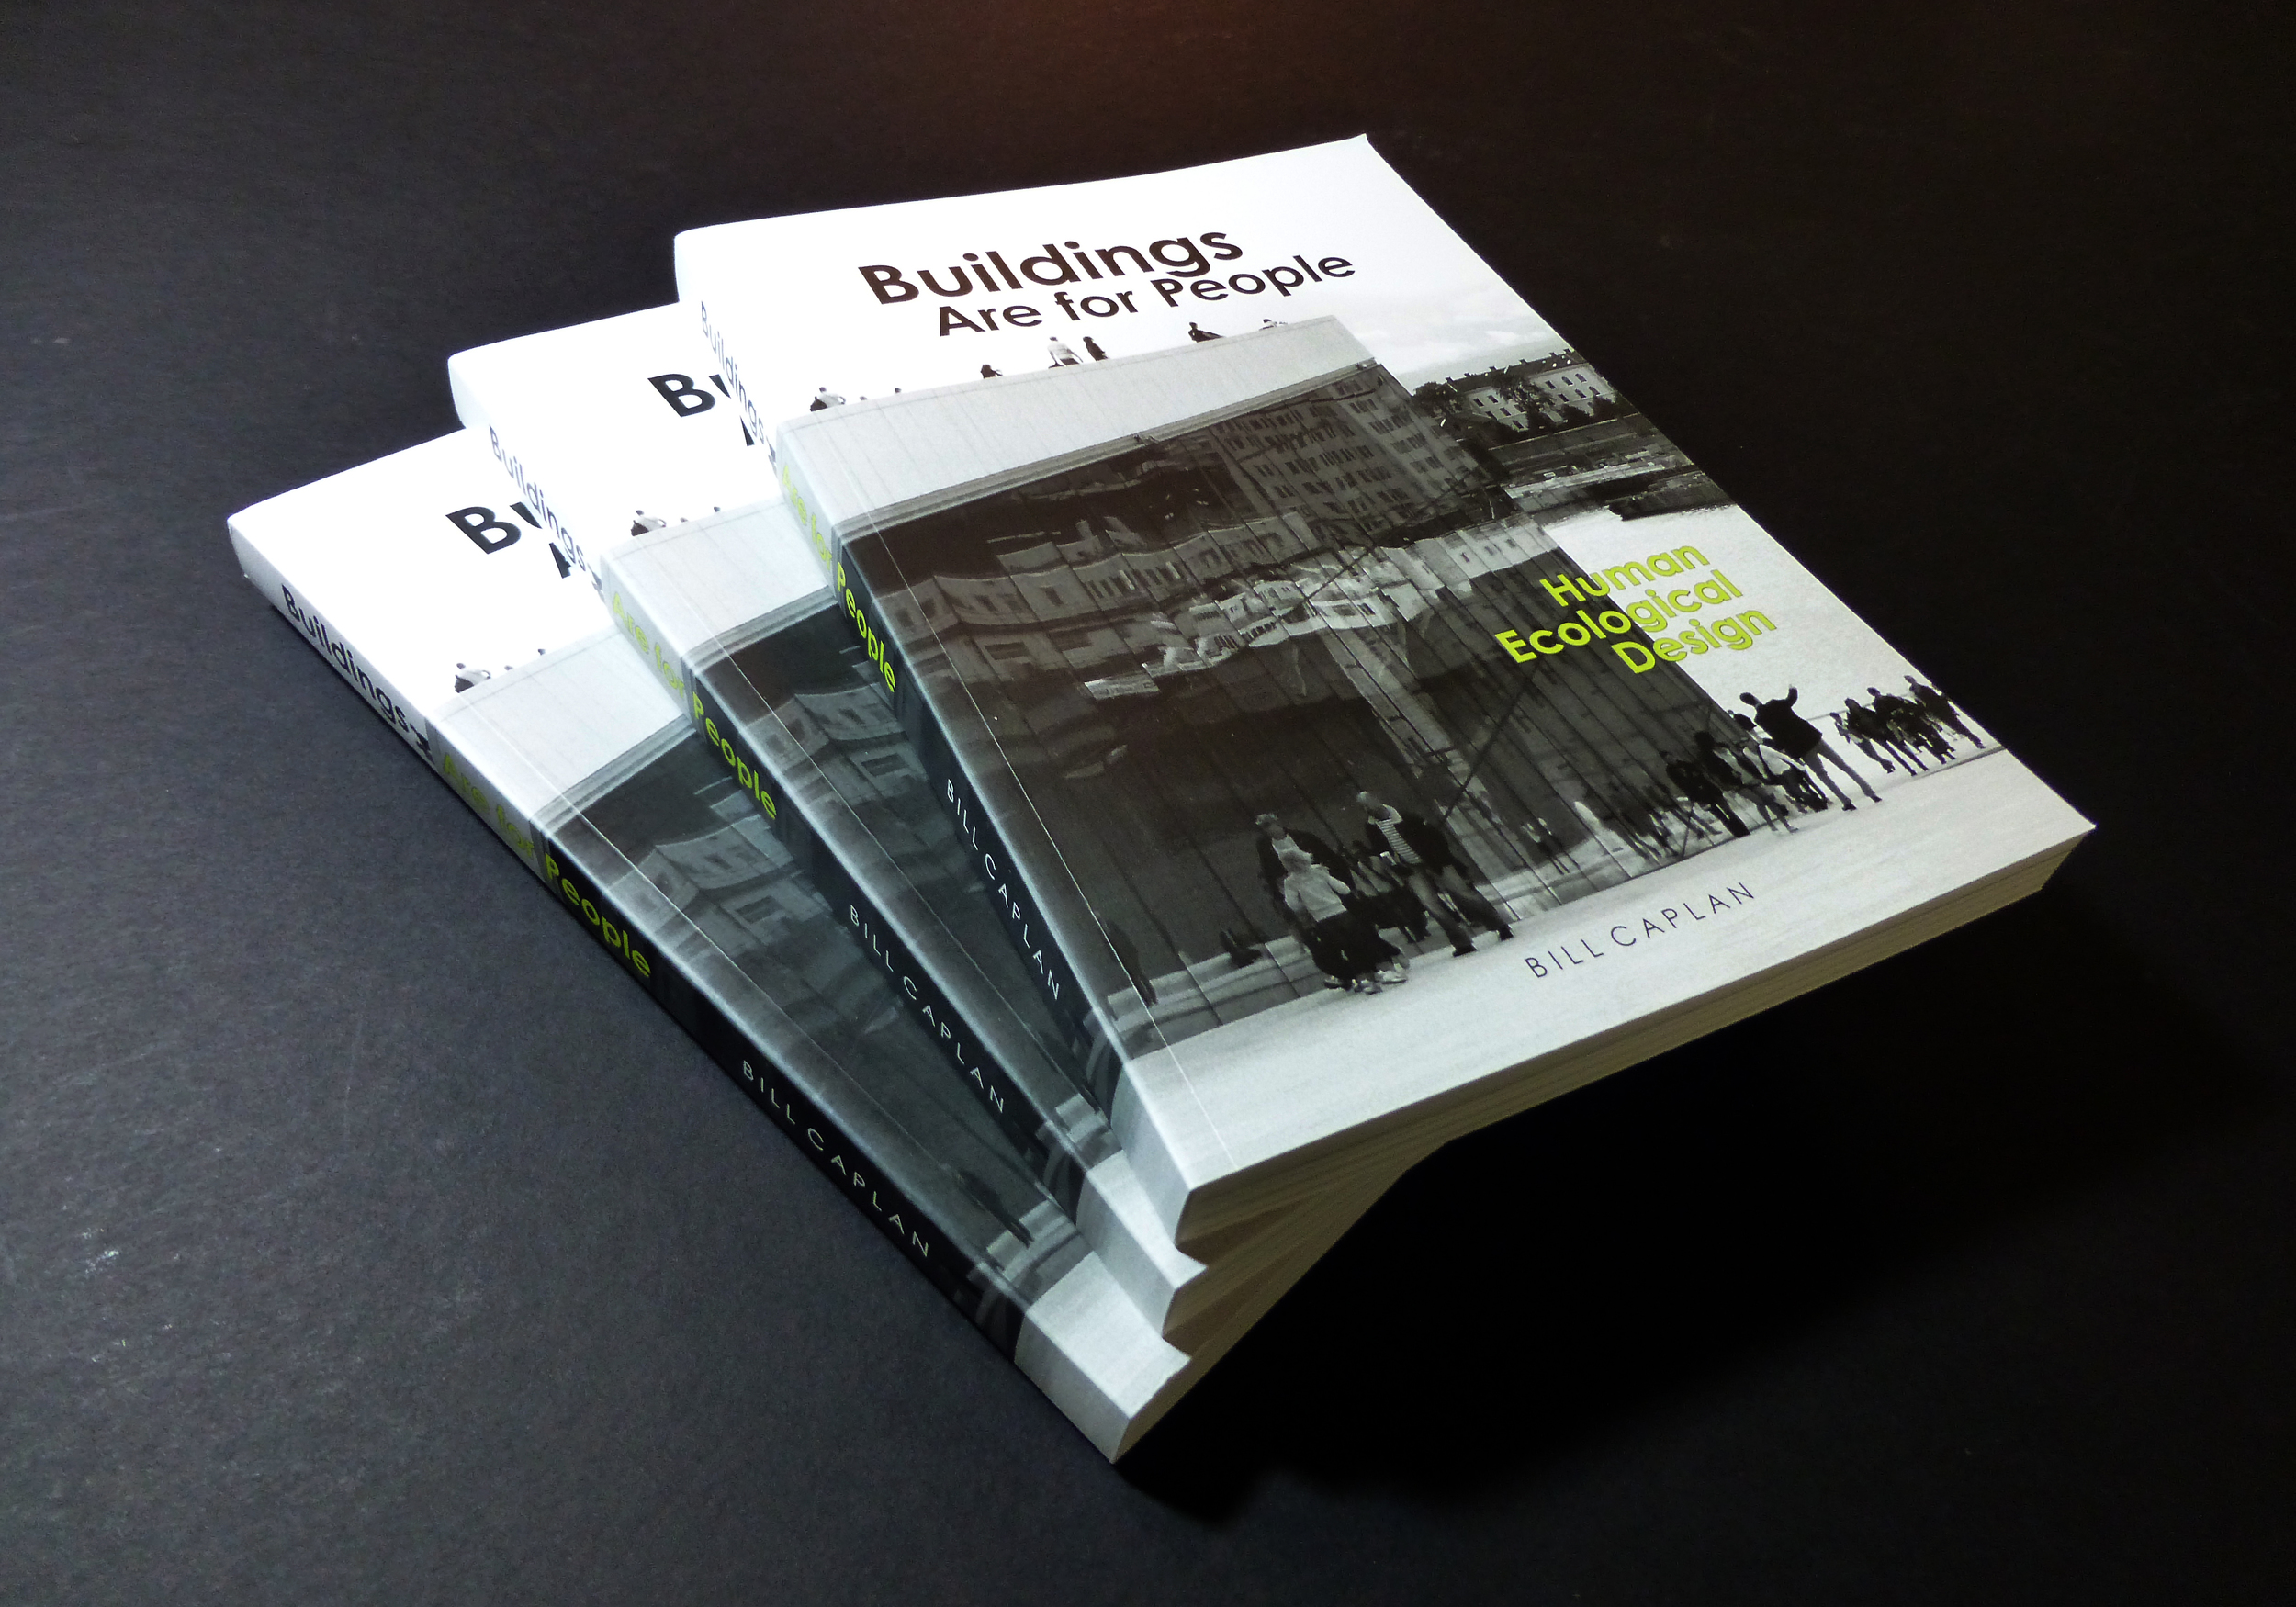 Books for architects and planners.jpg